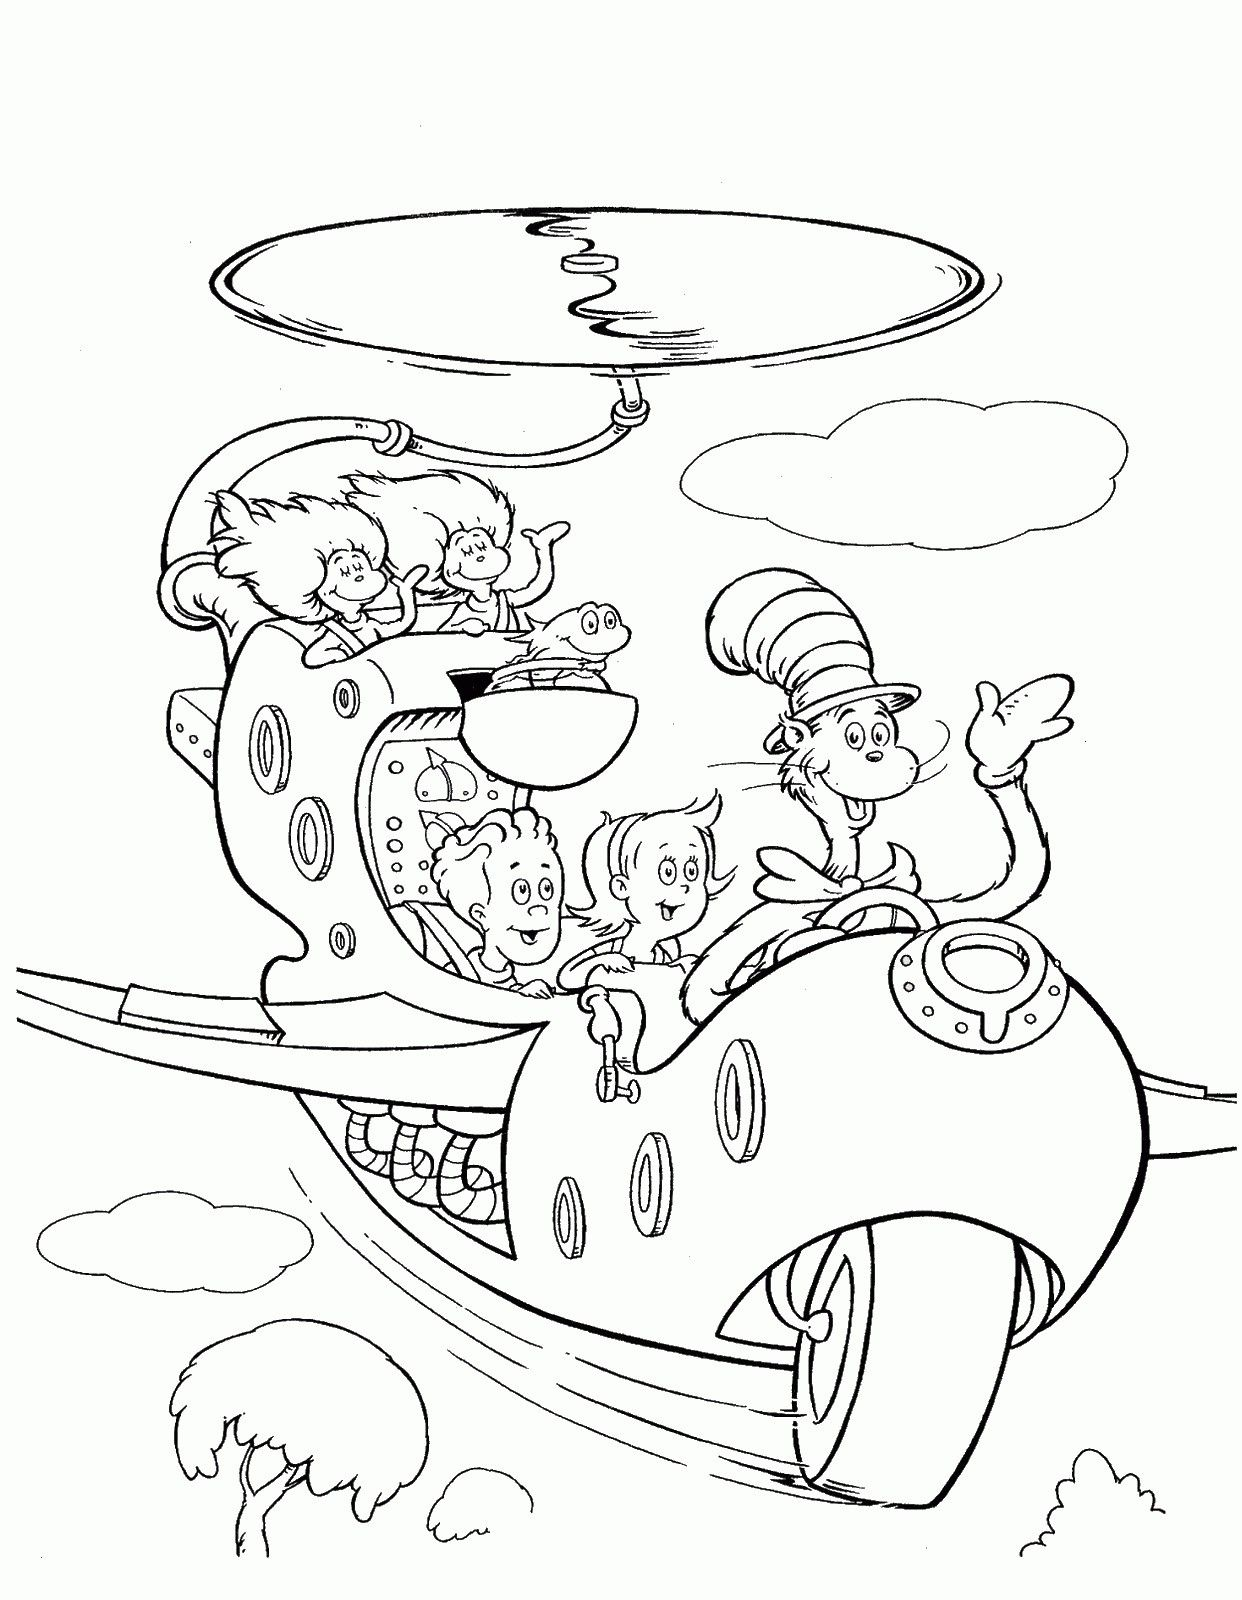 Cat And The Hat Hat Coloring Page Through The Thousands Of Images On The Web Concerning Dr Seuss Coloring Pages Cartoon Coloring Pages Animal Coloring Pages